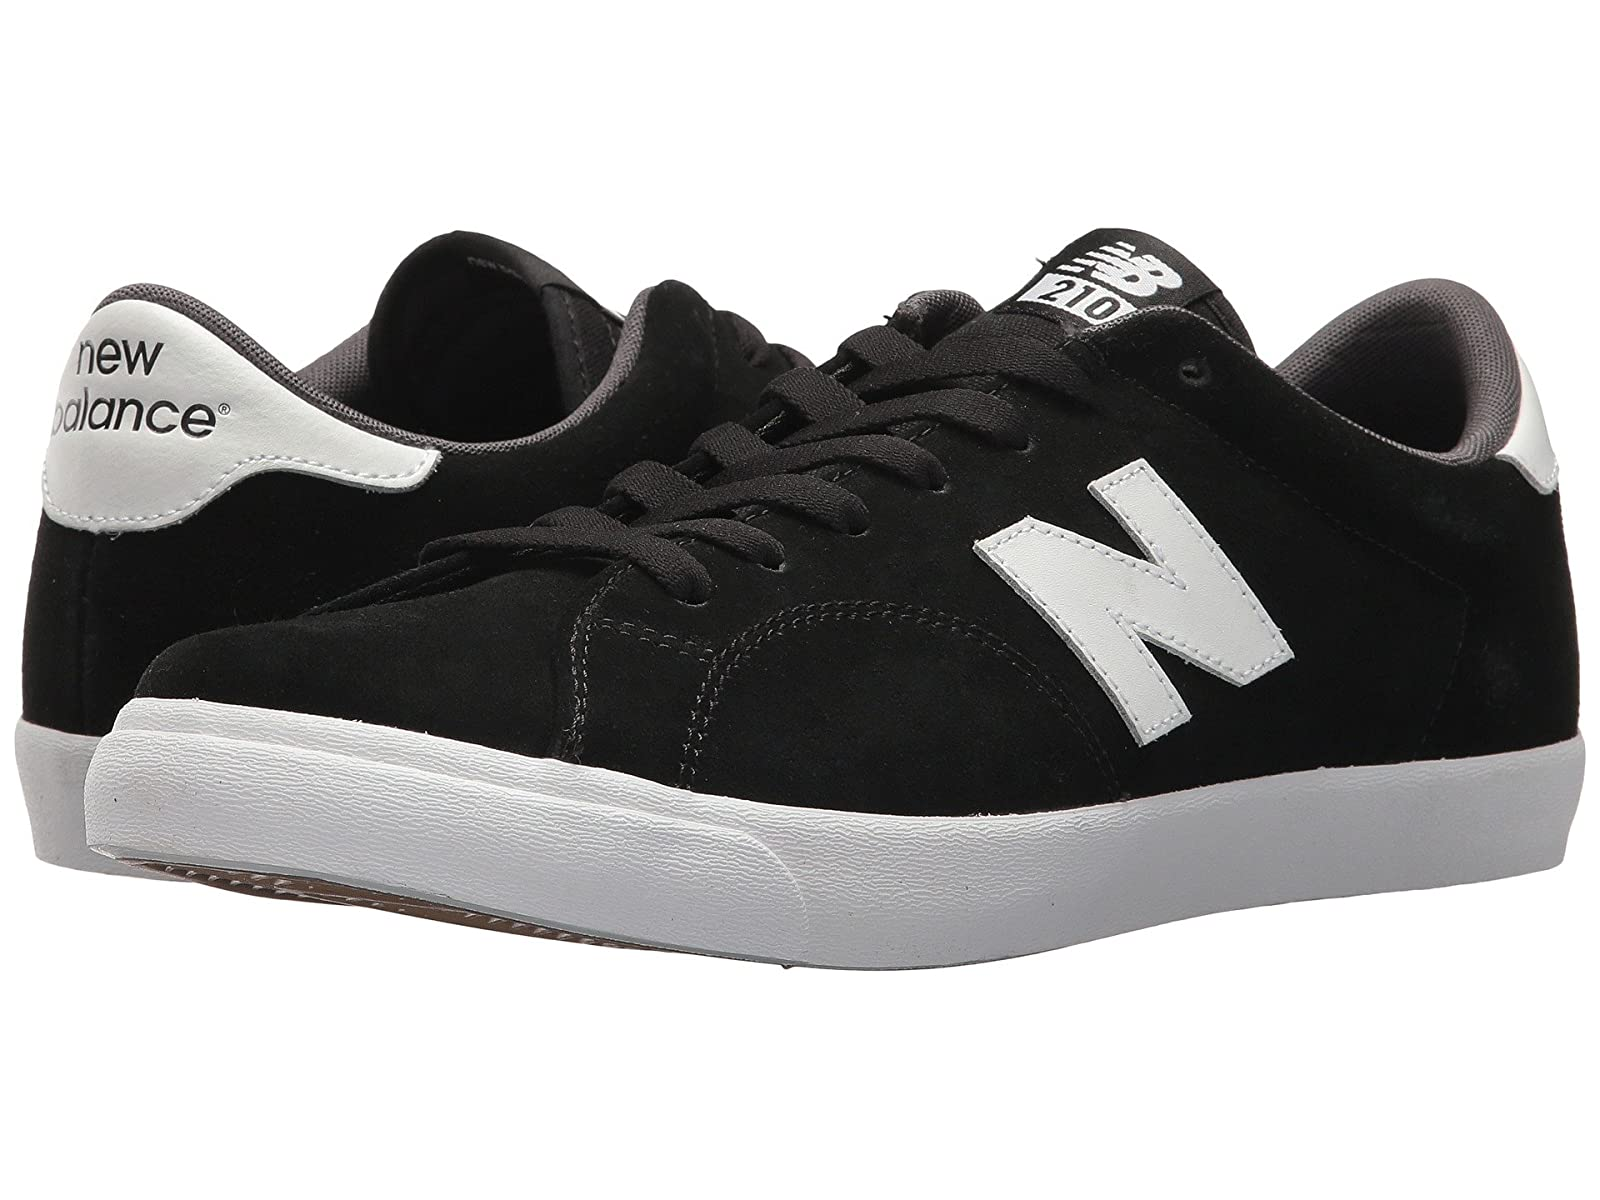 New Balance Numeric AM210Cheap and distinctive eye-catching shoes